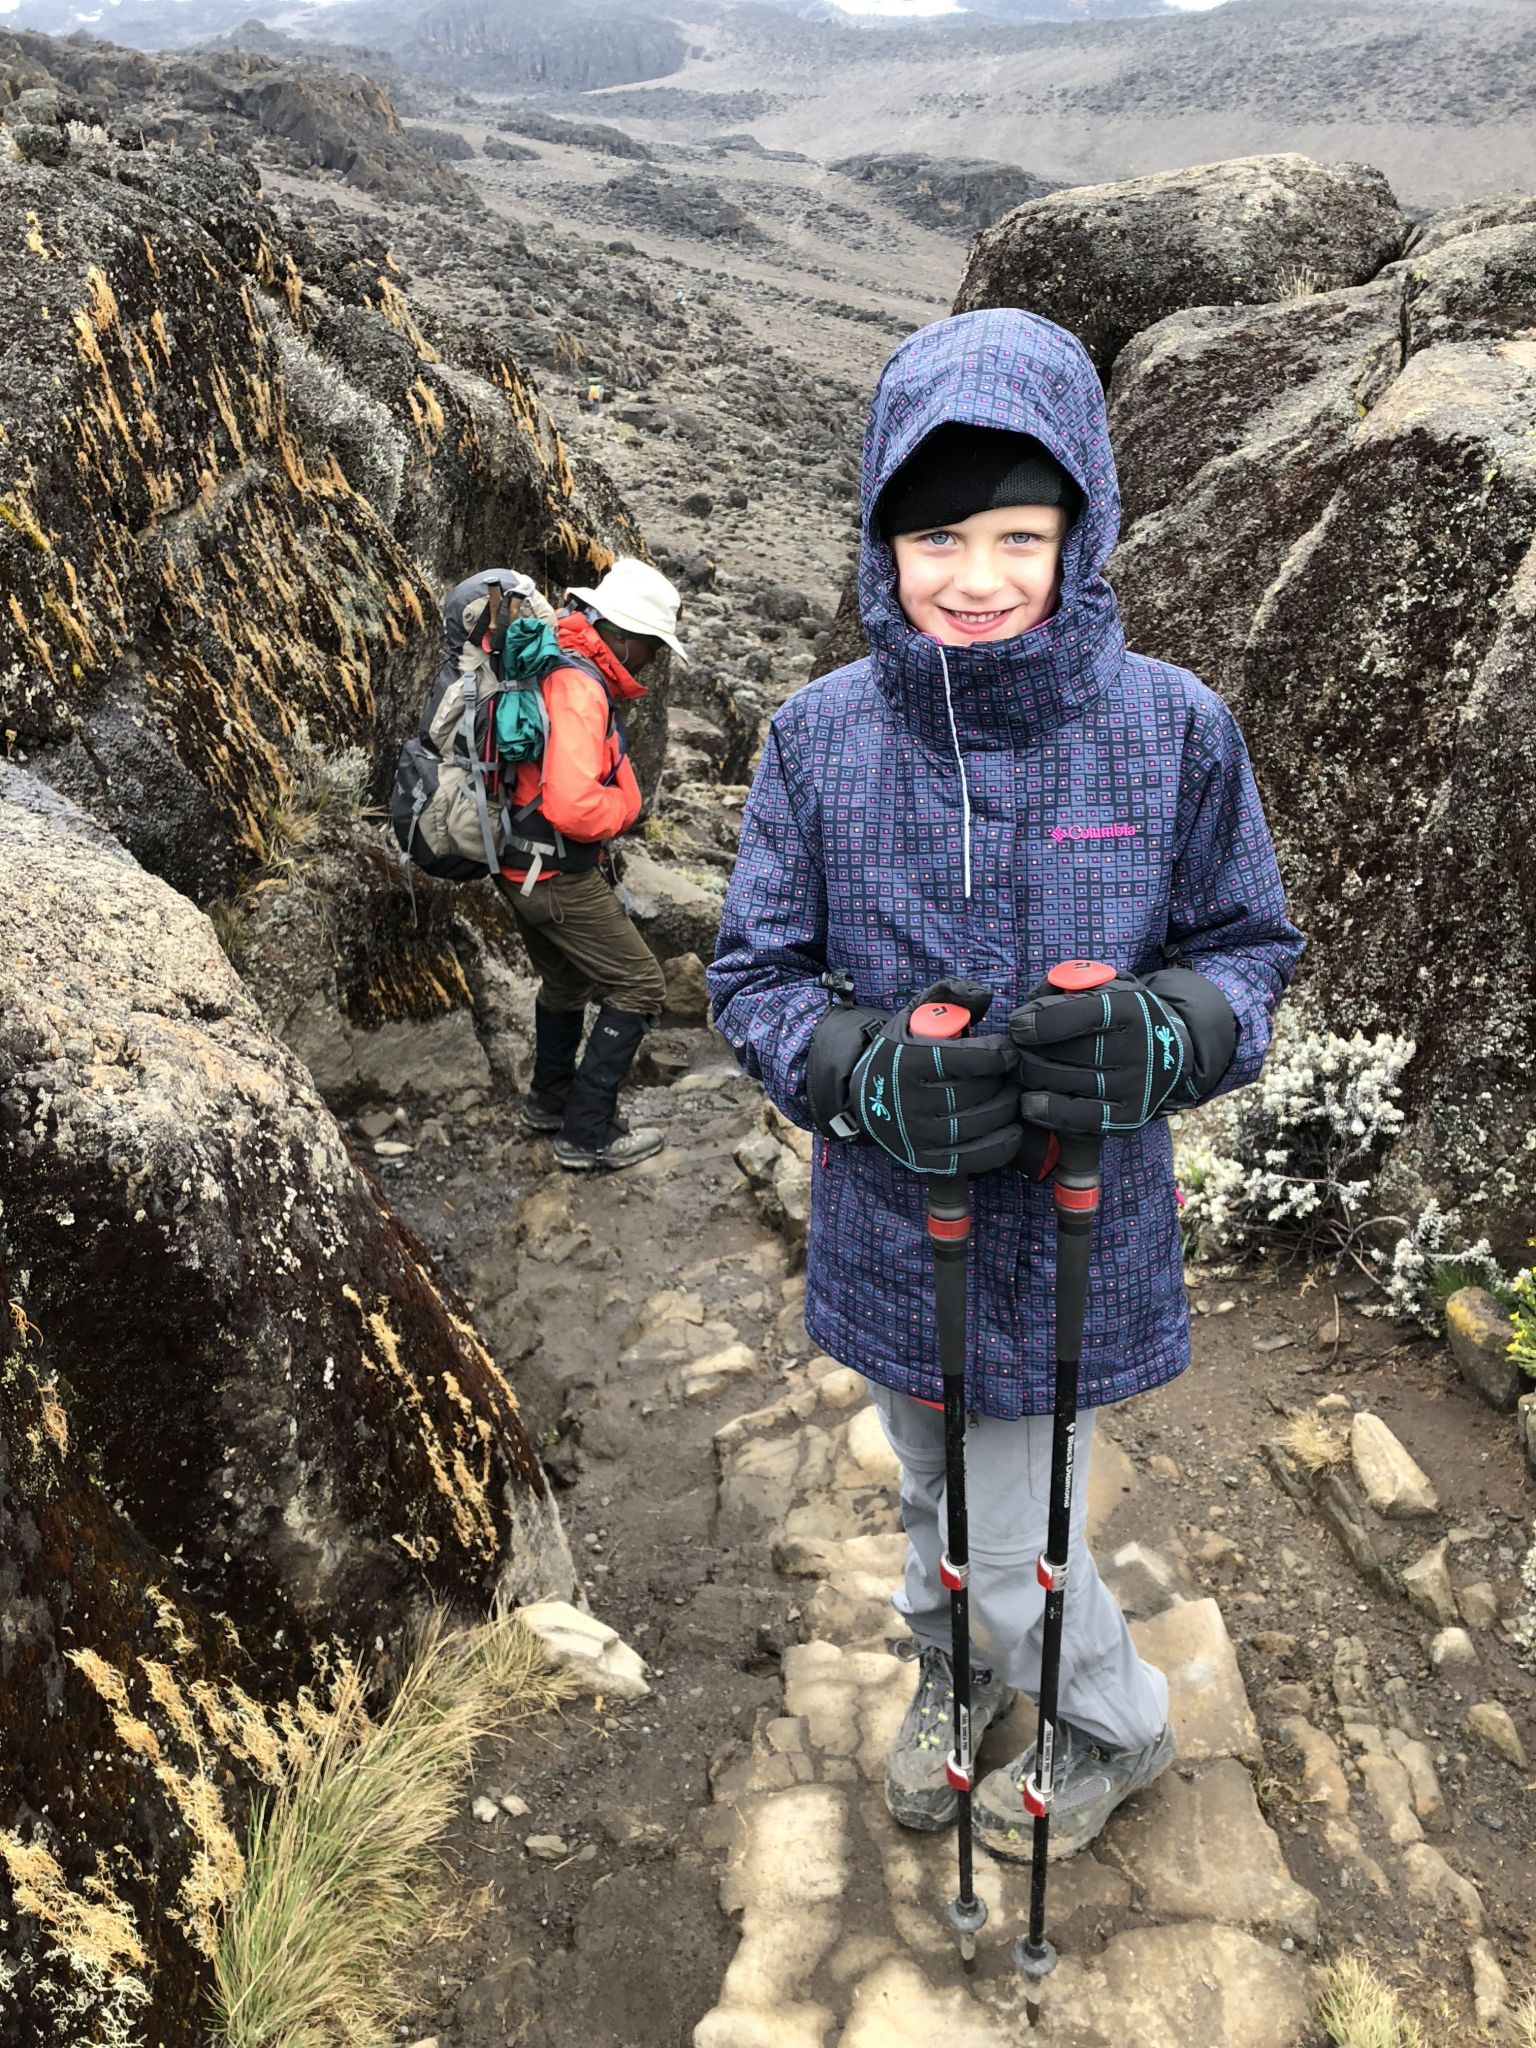 Austin Second Grader Sets Record As Youngest Girl To Climb Mount Kilimanjaro